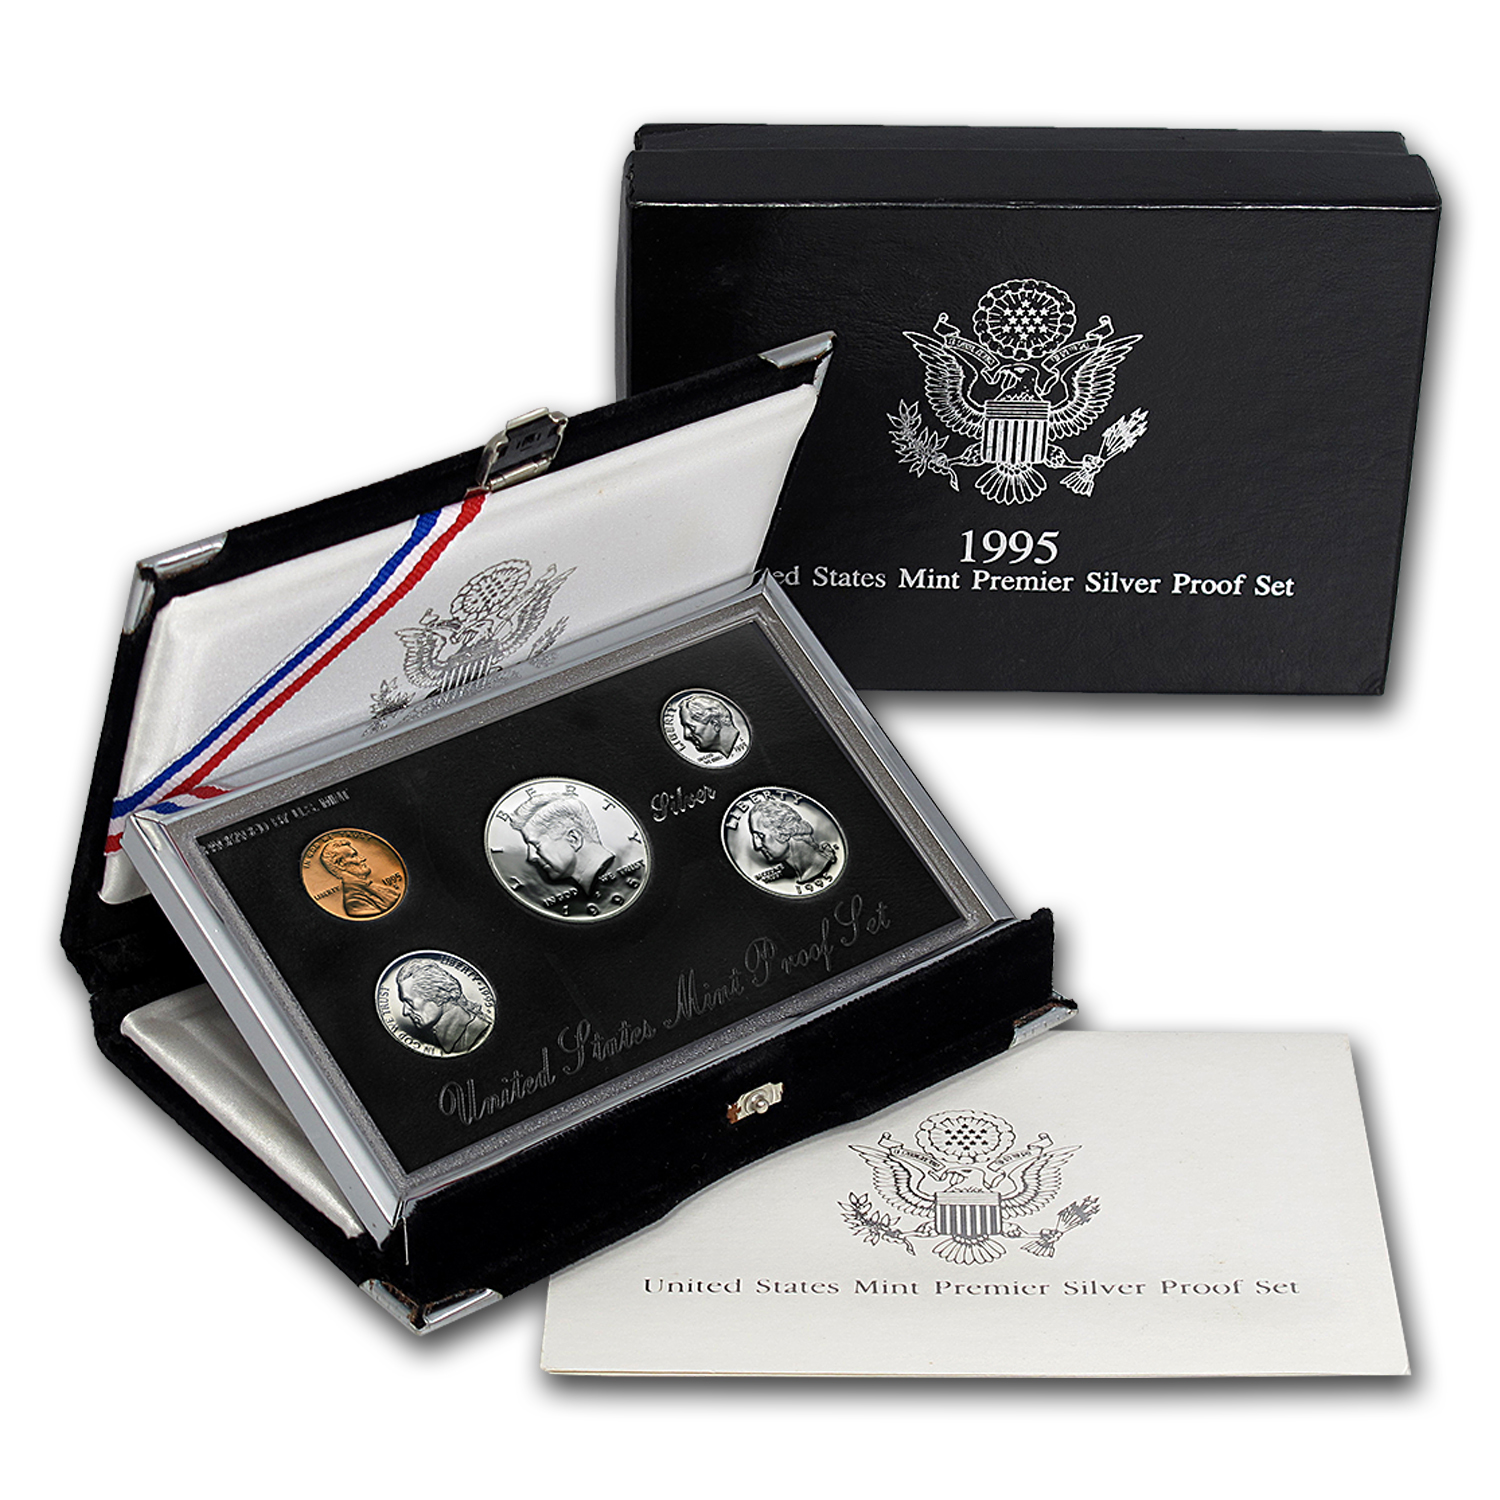 1995 Premier Silver Proof Set